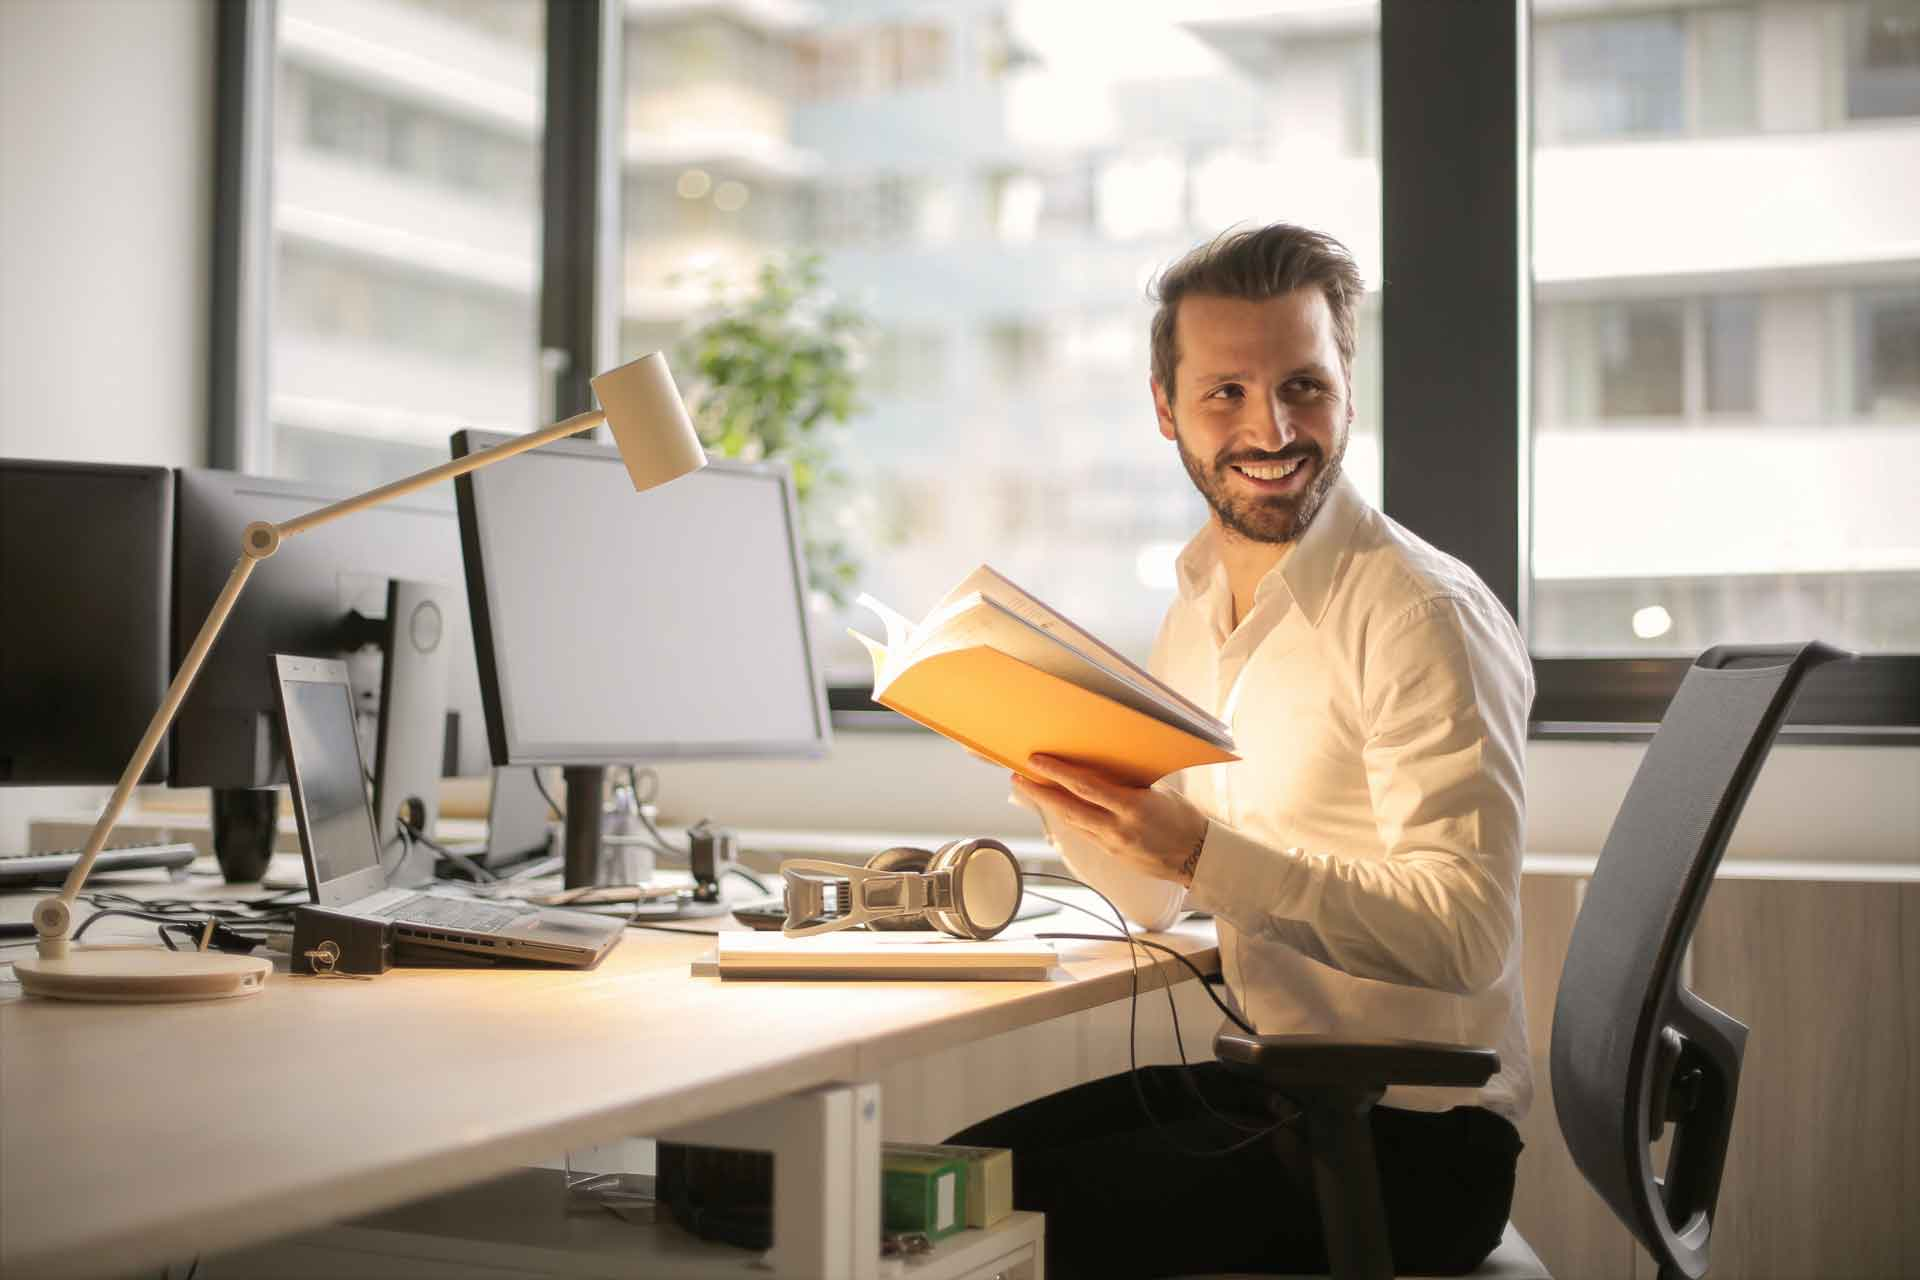 Smiling man sitting at computer desk while reading a book